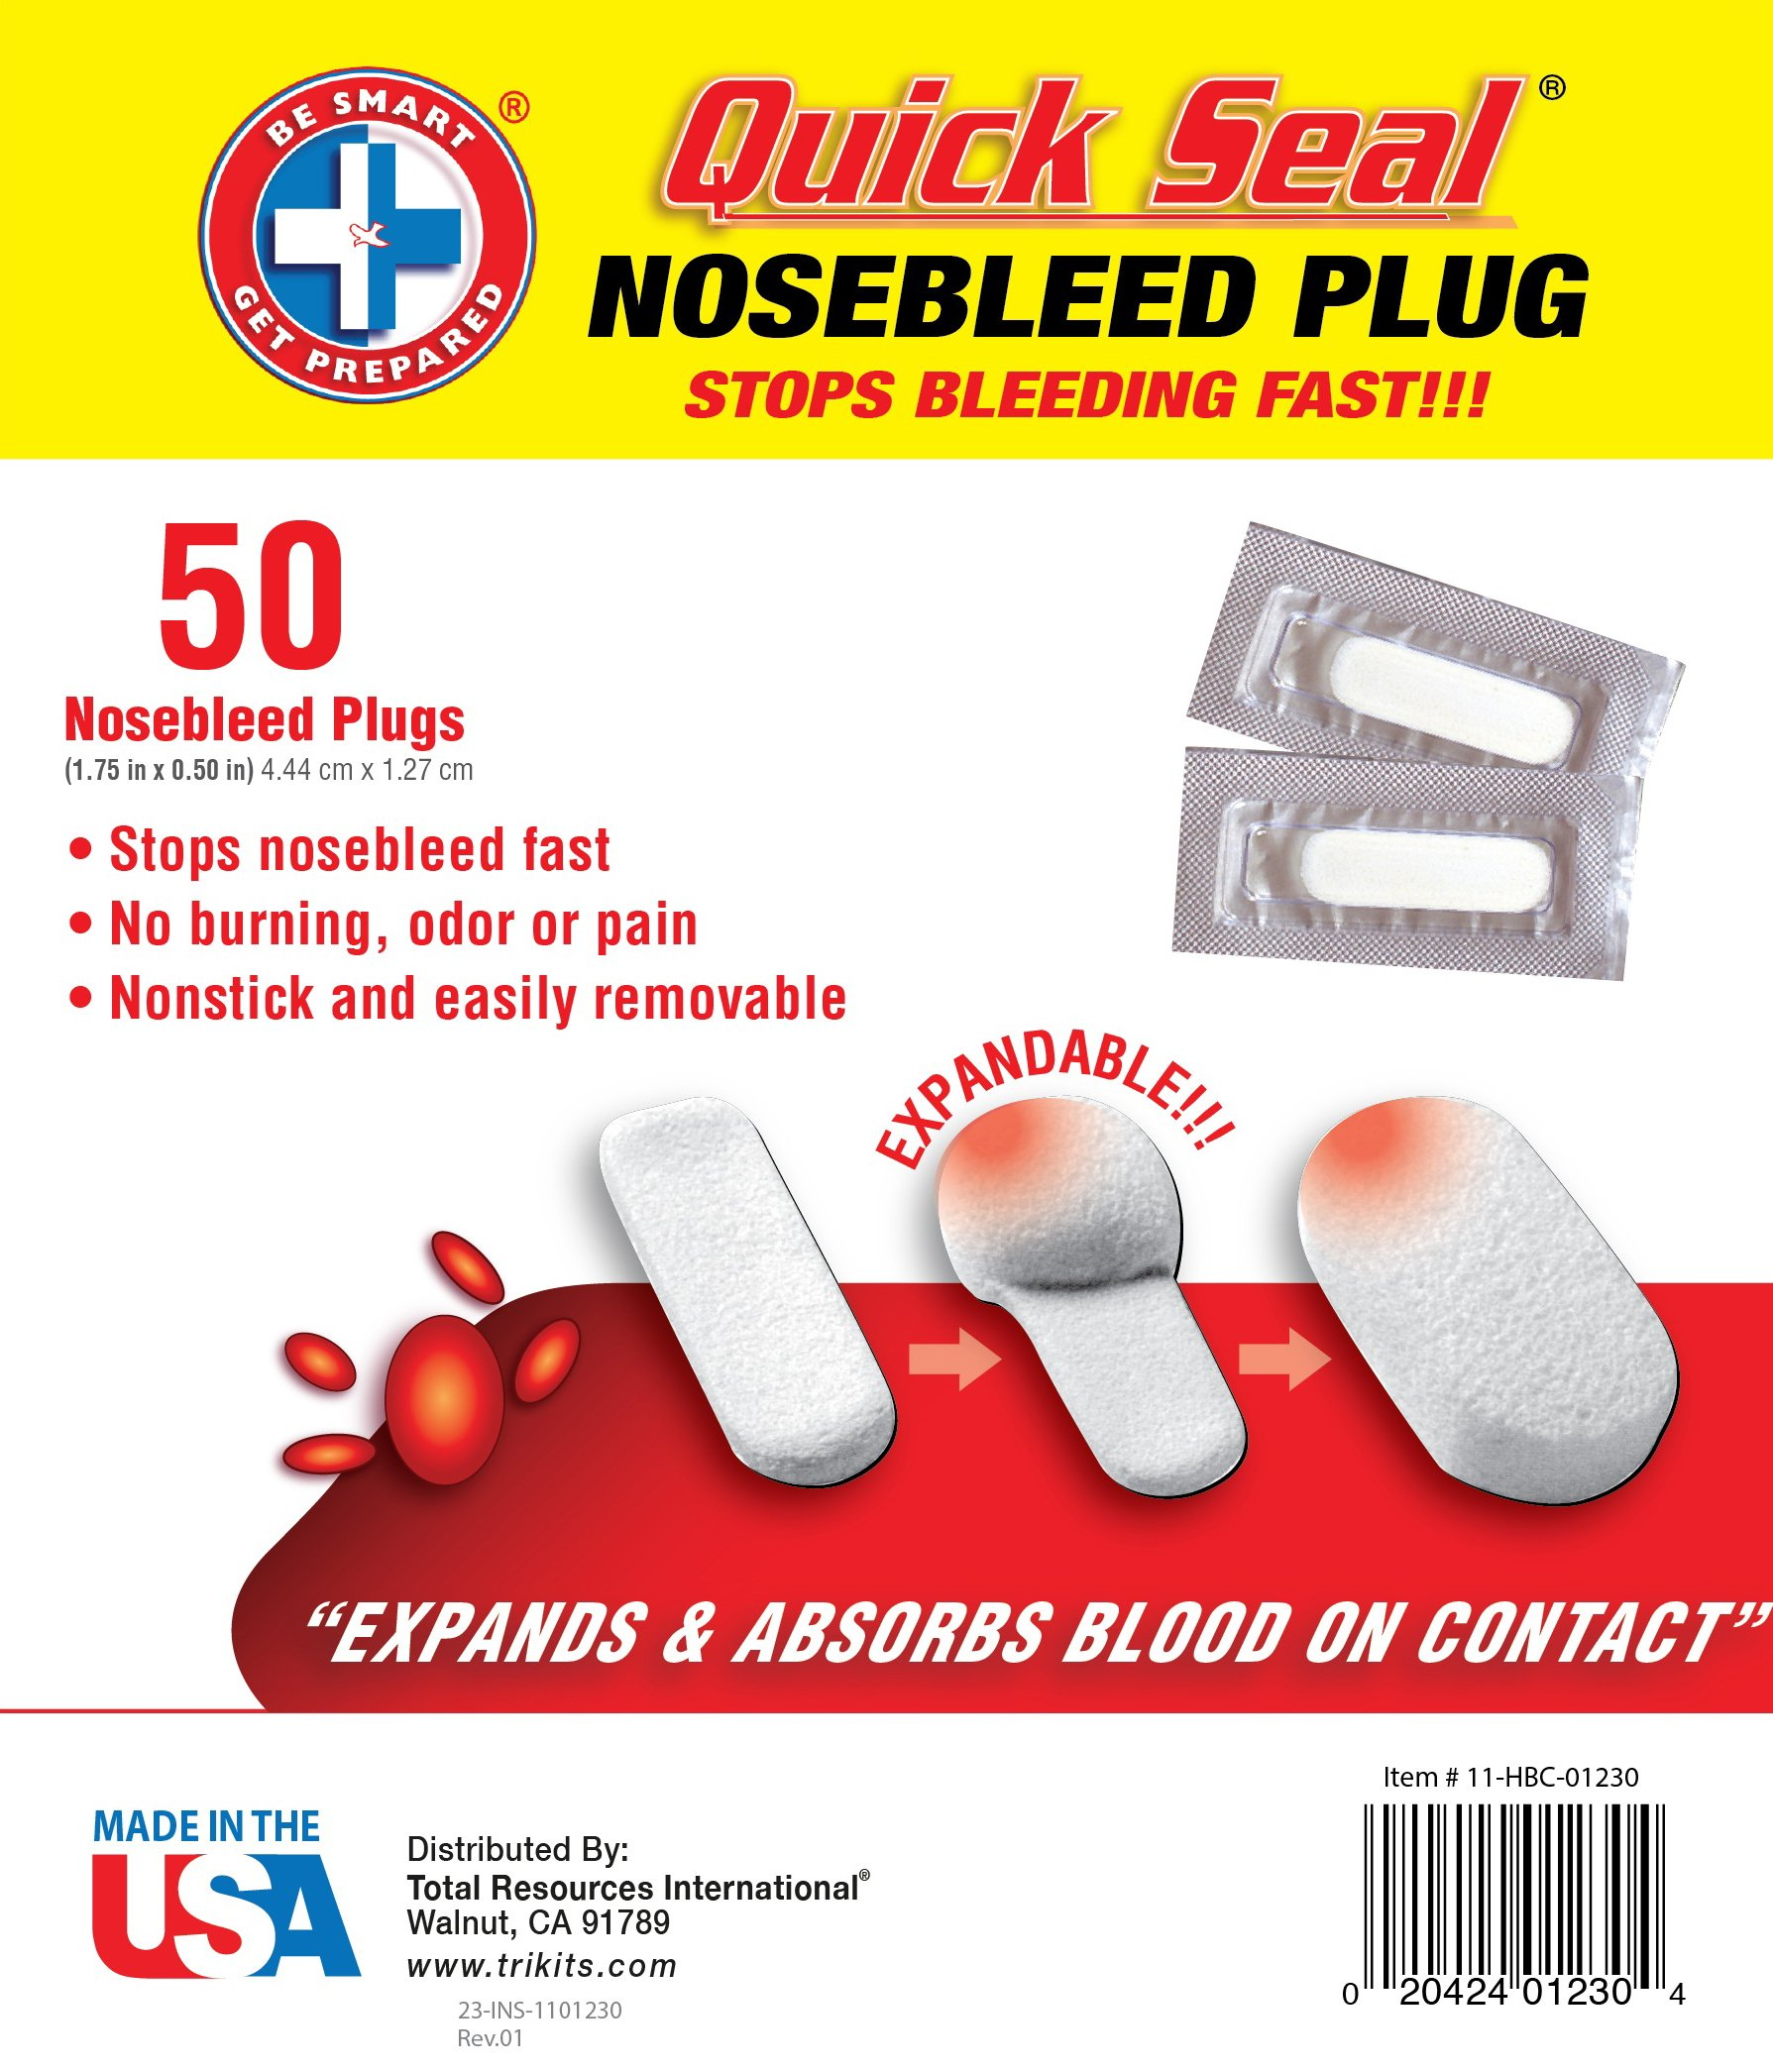 Be Smart Get Prepared Quick Seal Nosebleed Plugs, 50 Count